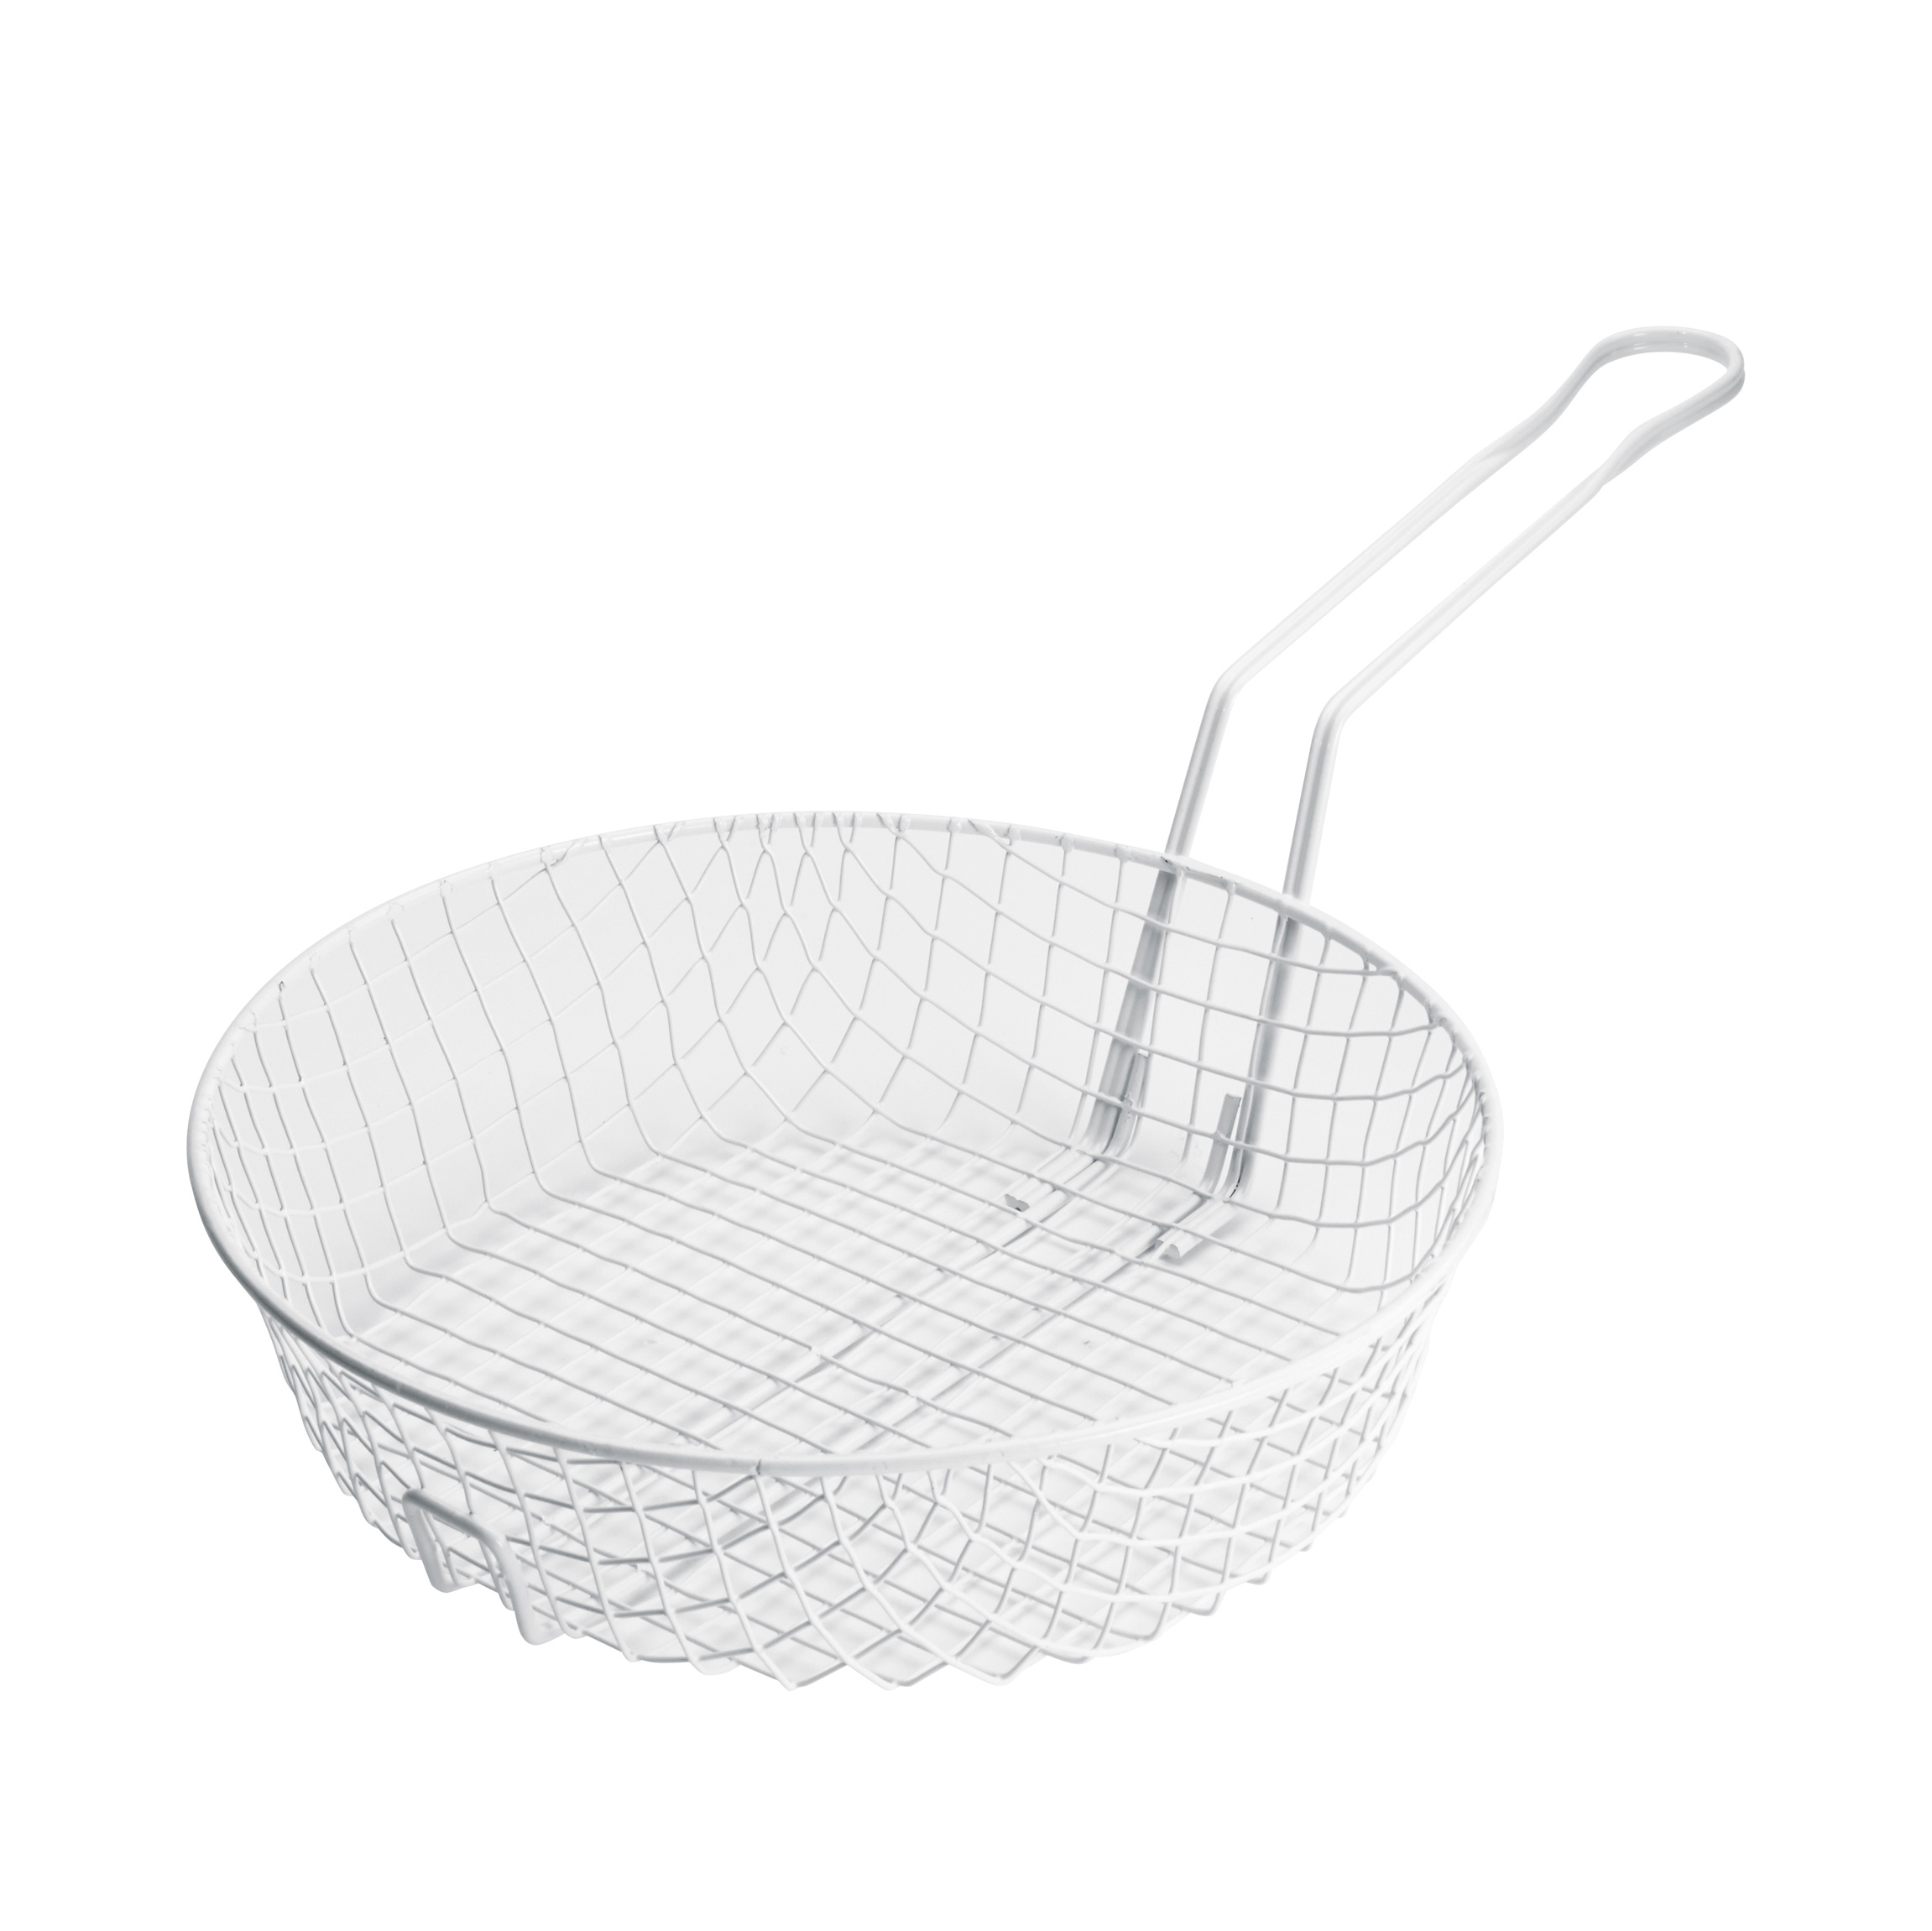 Winco MSBW-12 fryer basket